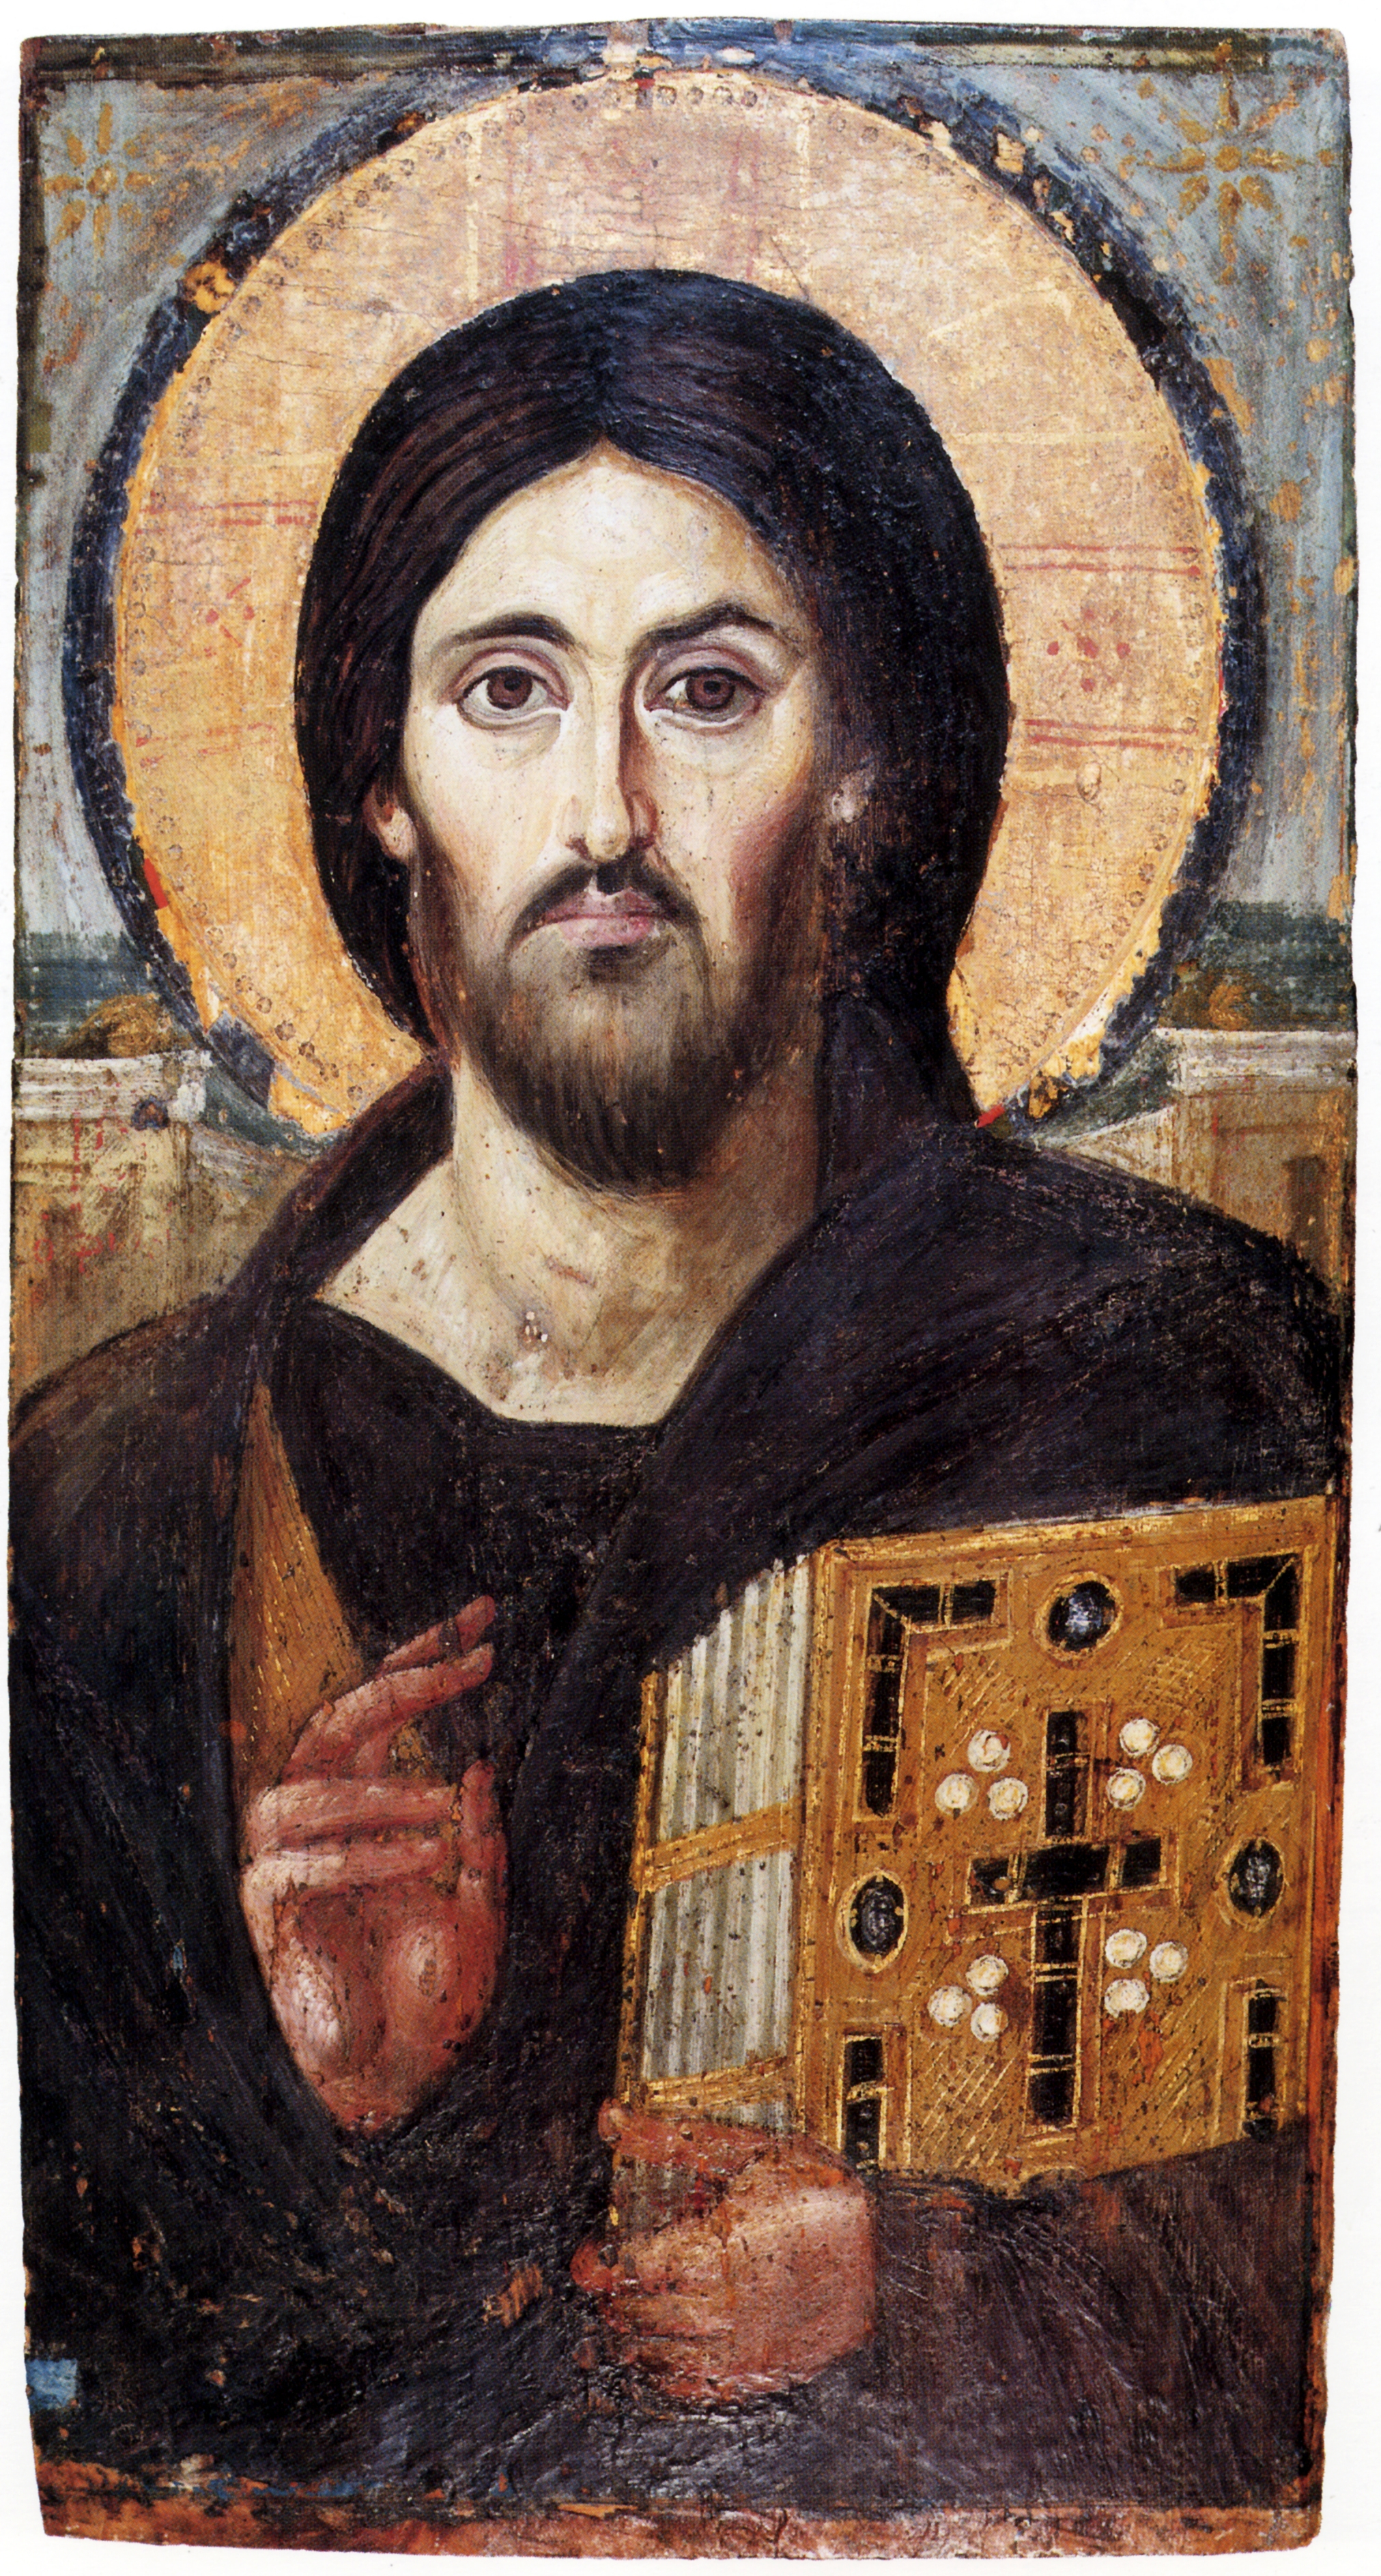 Depiction of Jesus